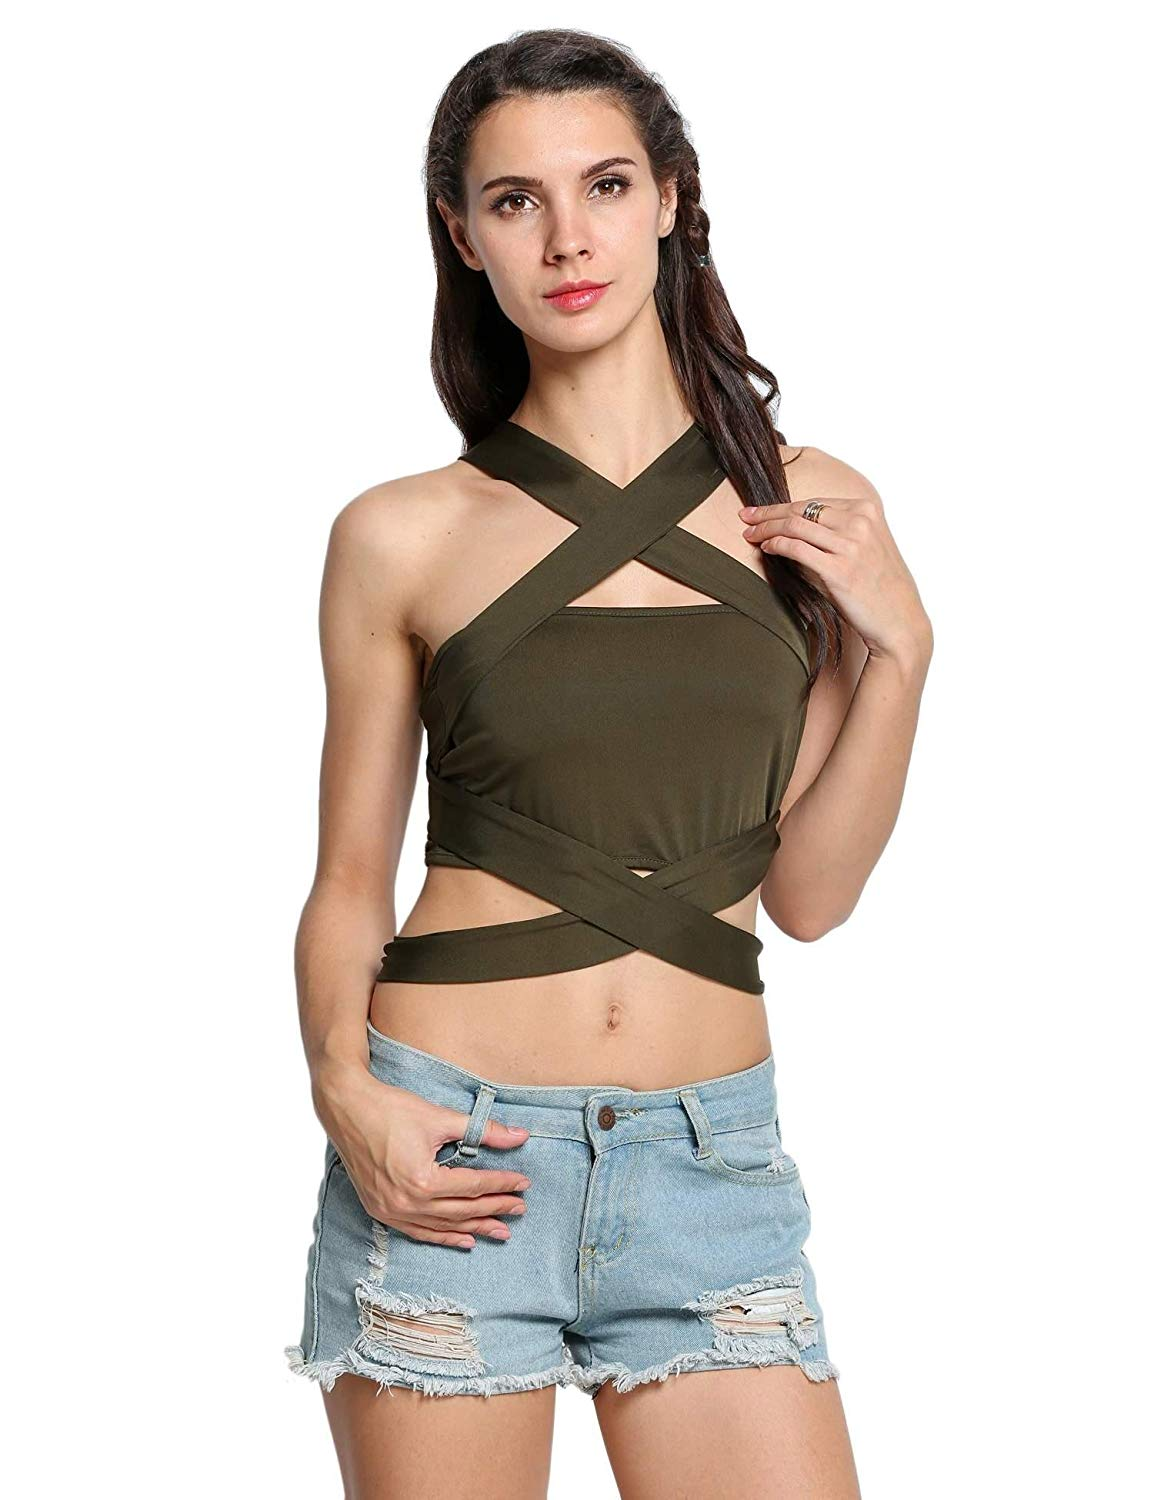 6316a9ca183 Get Quotations · dongba Cotton Camisole Tops for Women Empire Waist Tops  for Women Tanks   Camis